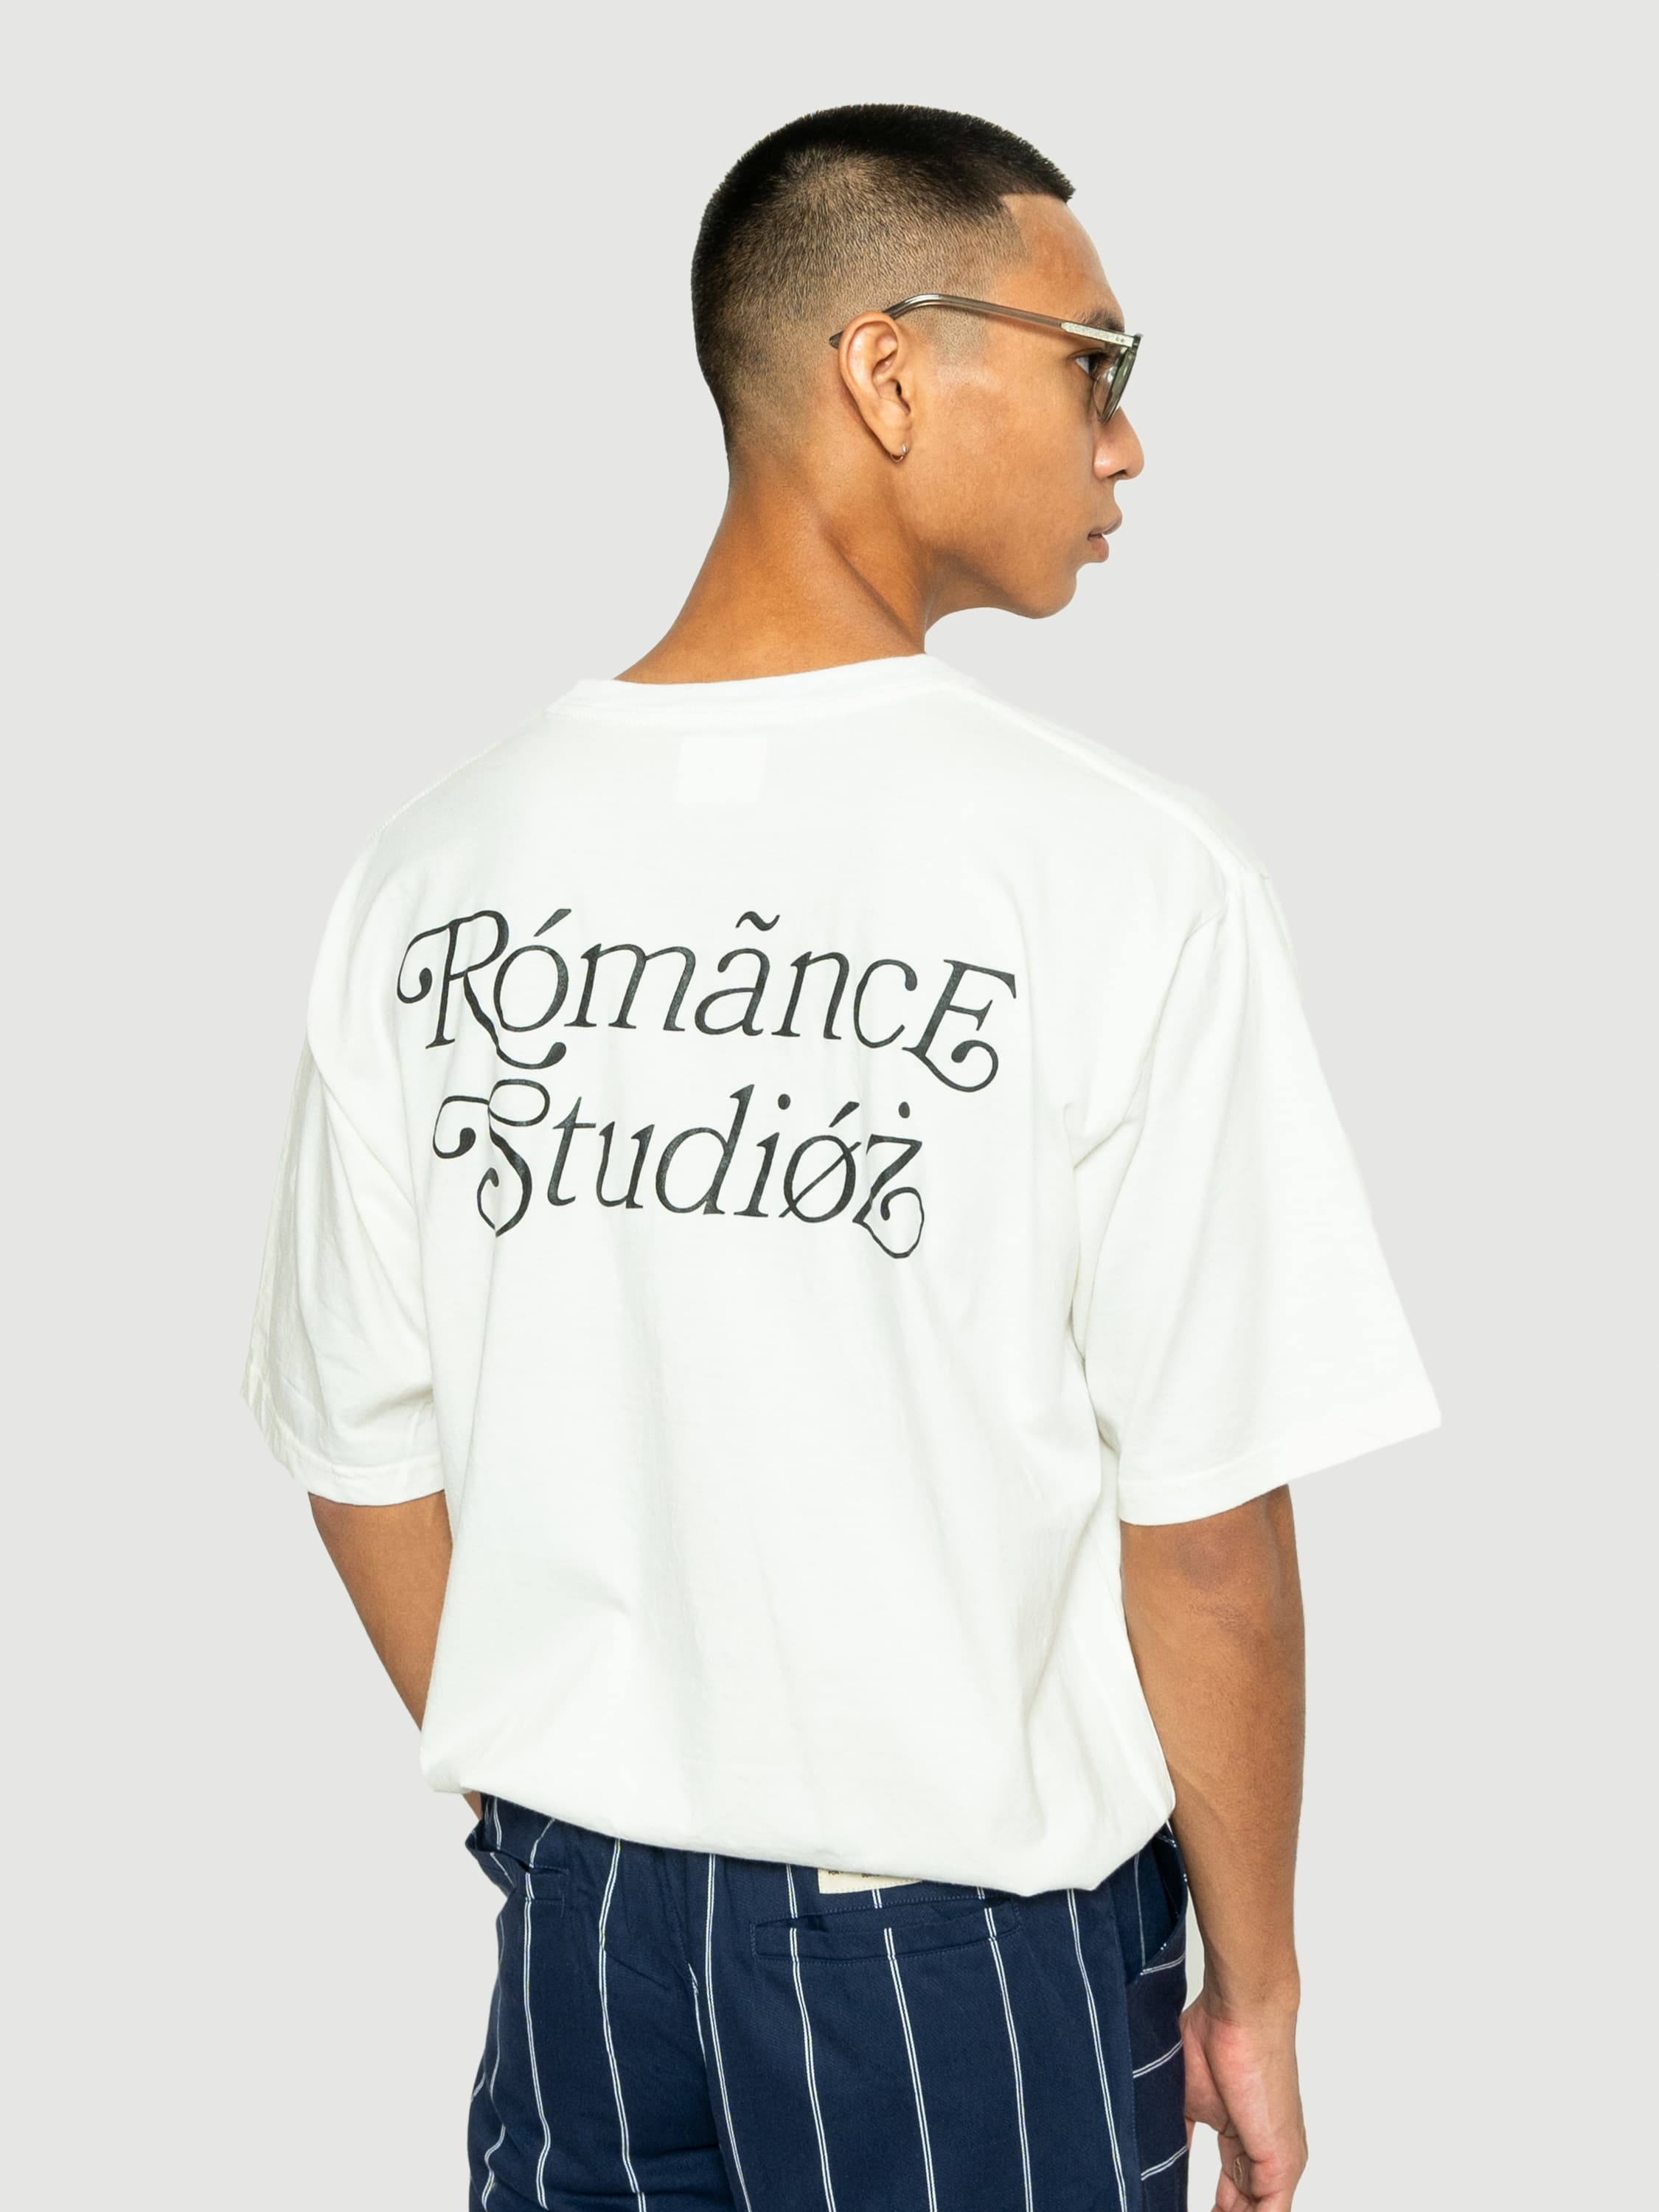 Romance Studioz Off-White T-shirt